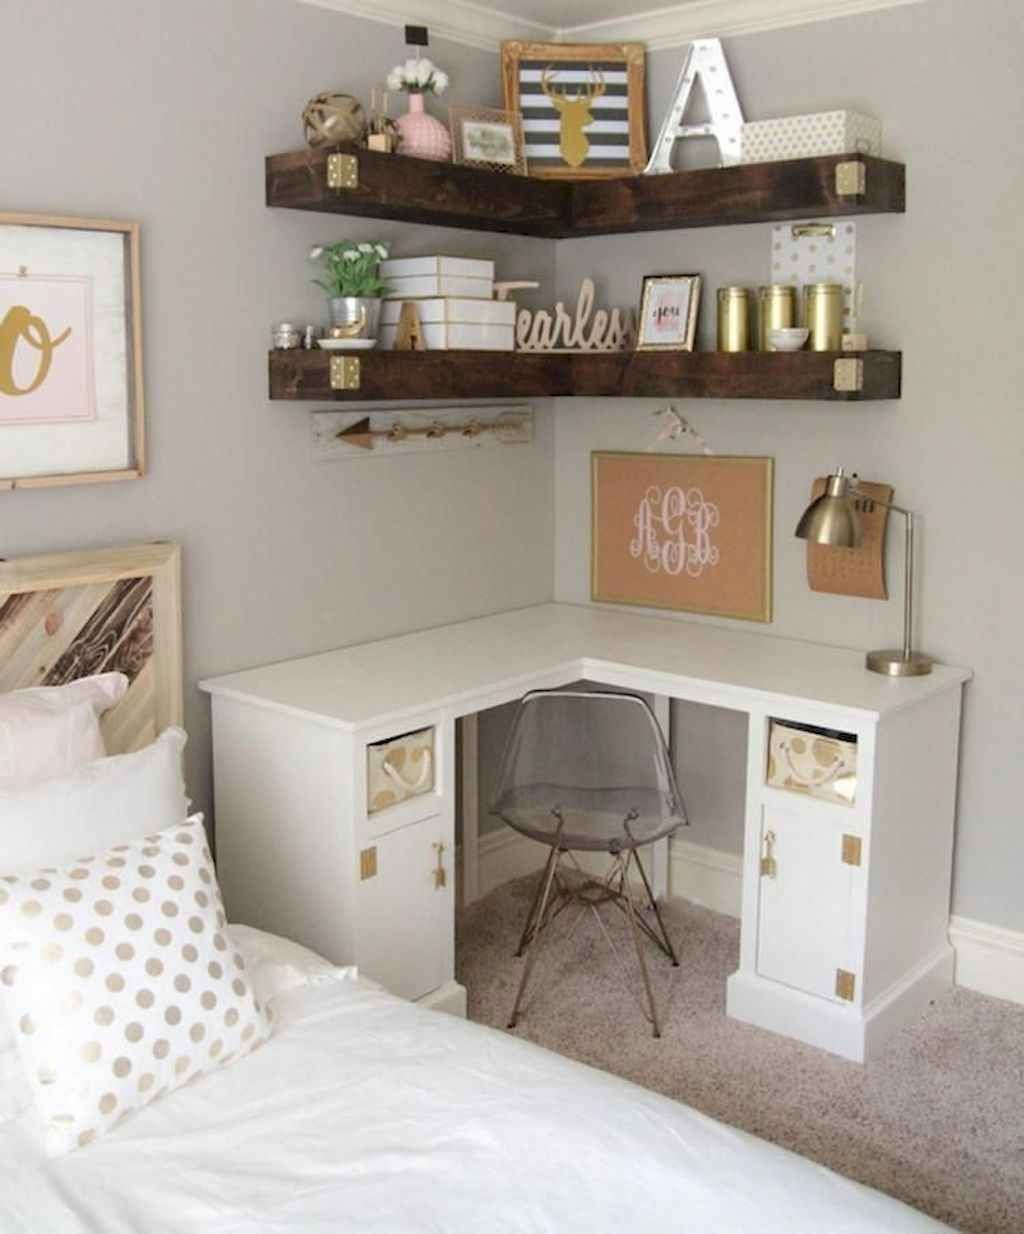 05 College Apartment Decorating Ideas on A Budget - decorationroom 05 College Apartment Decorating Ideas on A Budget - decorationroom #Apartment #apartment decorating on a budget kitchen #apartmentdecor #Budget #College #Decorating #decorationroom #Ideas